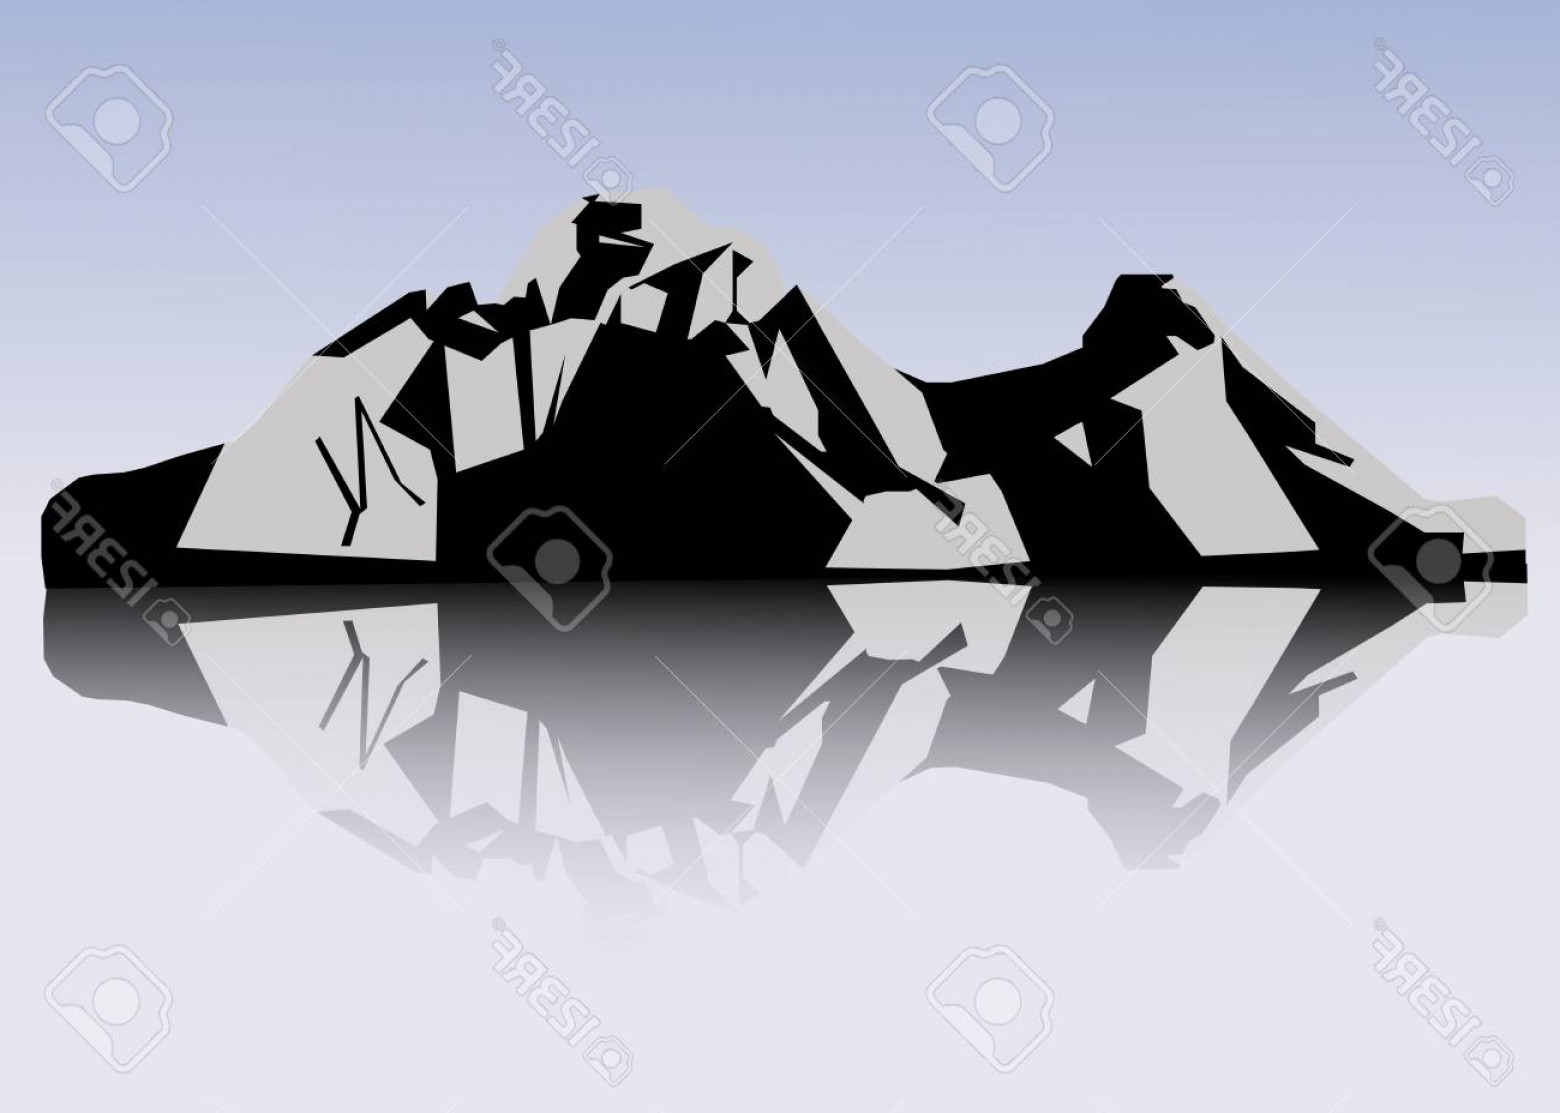 White Mountain Silhouette Vector Free: Photostock Vector Set Of Black And White Mountain Silhouettes Vector Illustration On The Transparent Background